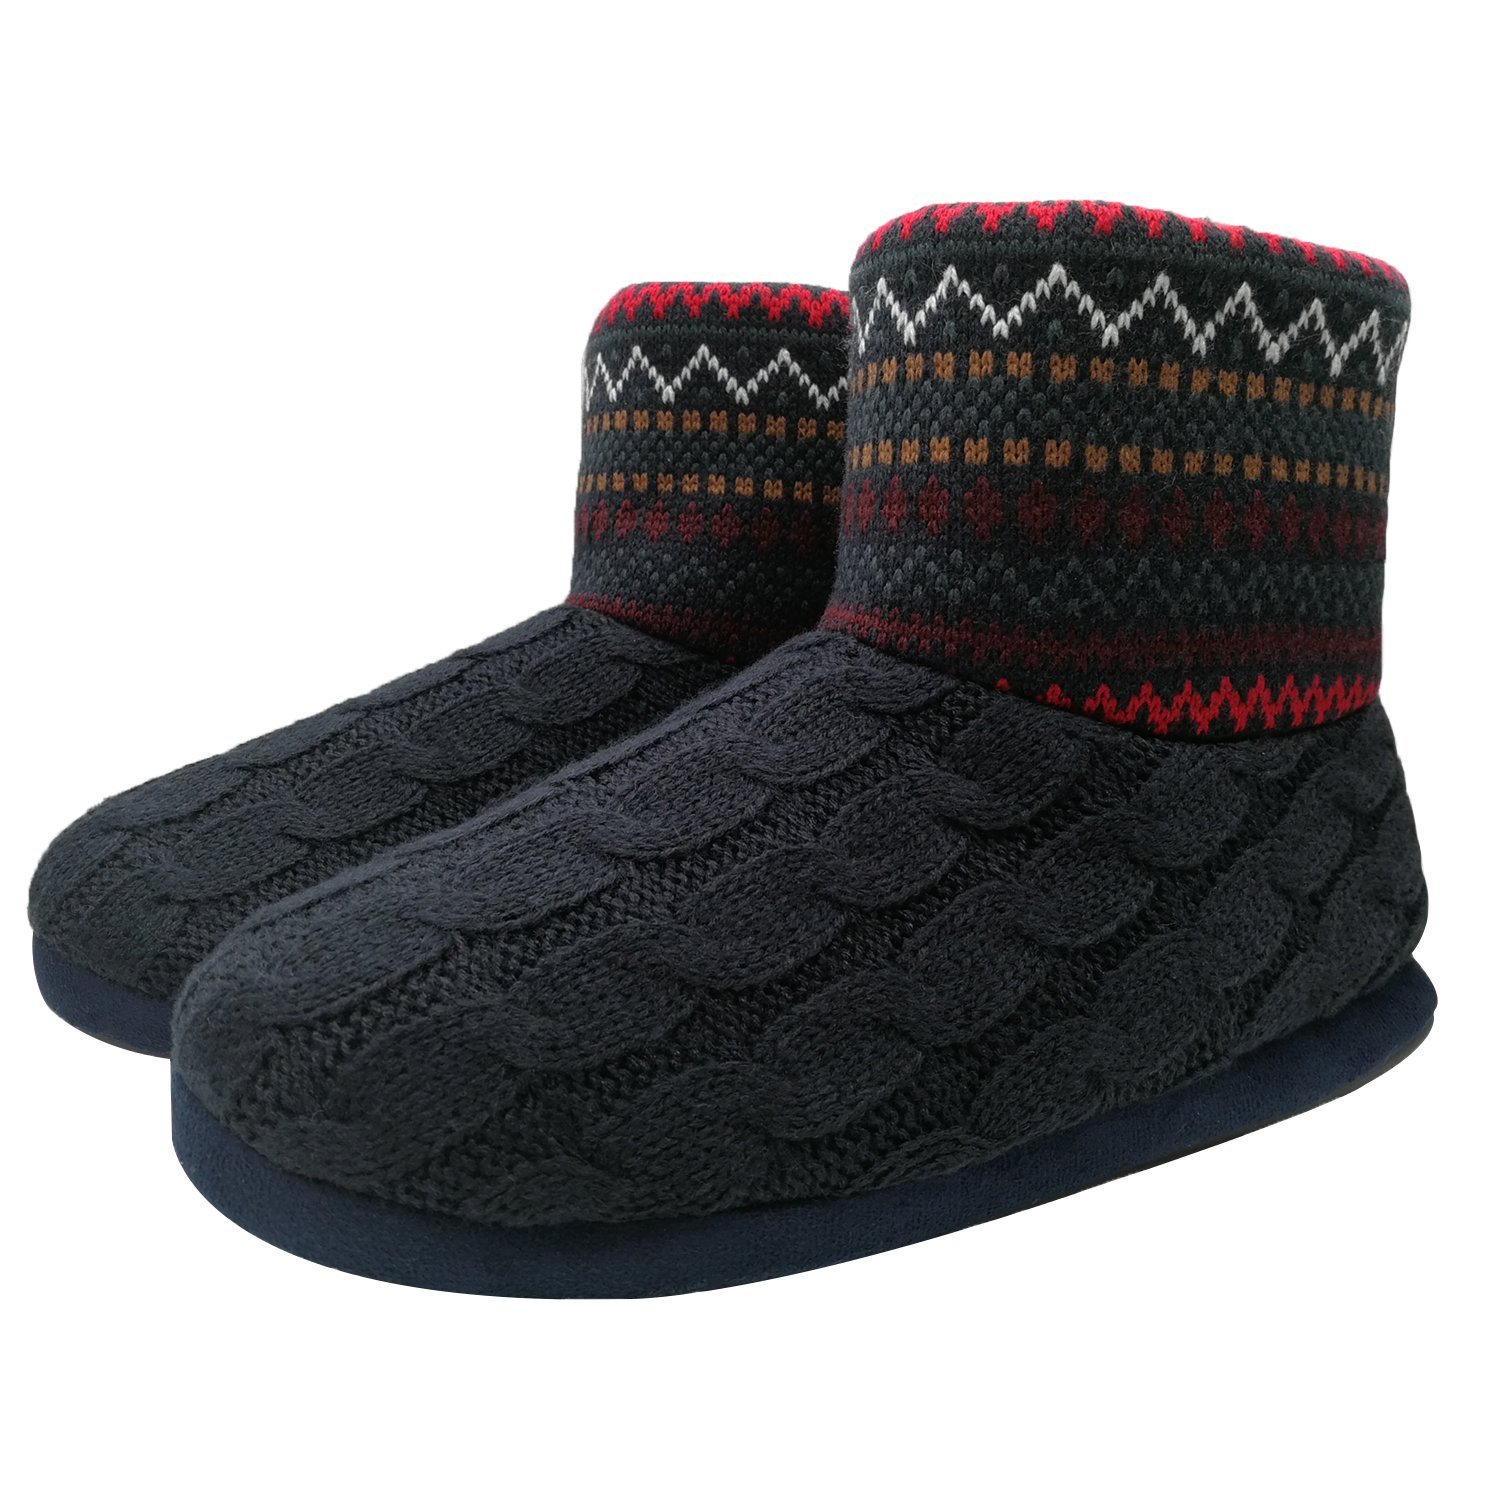 SunbowStar Men's Faux Fur Lined Knit Anti-Slip Indoor Slippers Boots House Slipper Bootie,Dark Blue-10 D(M) US